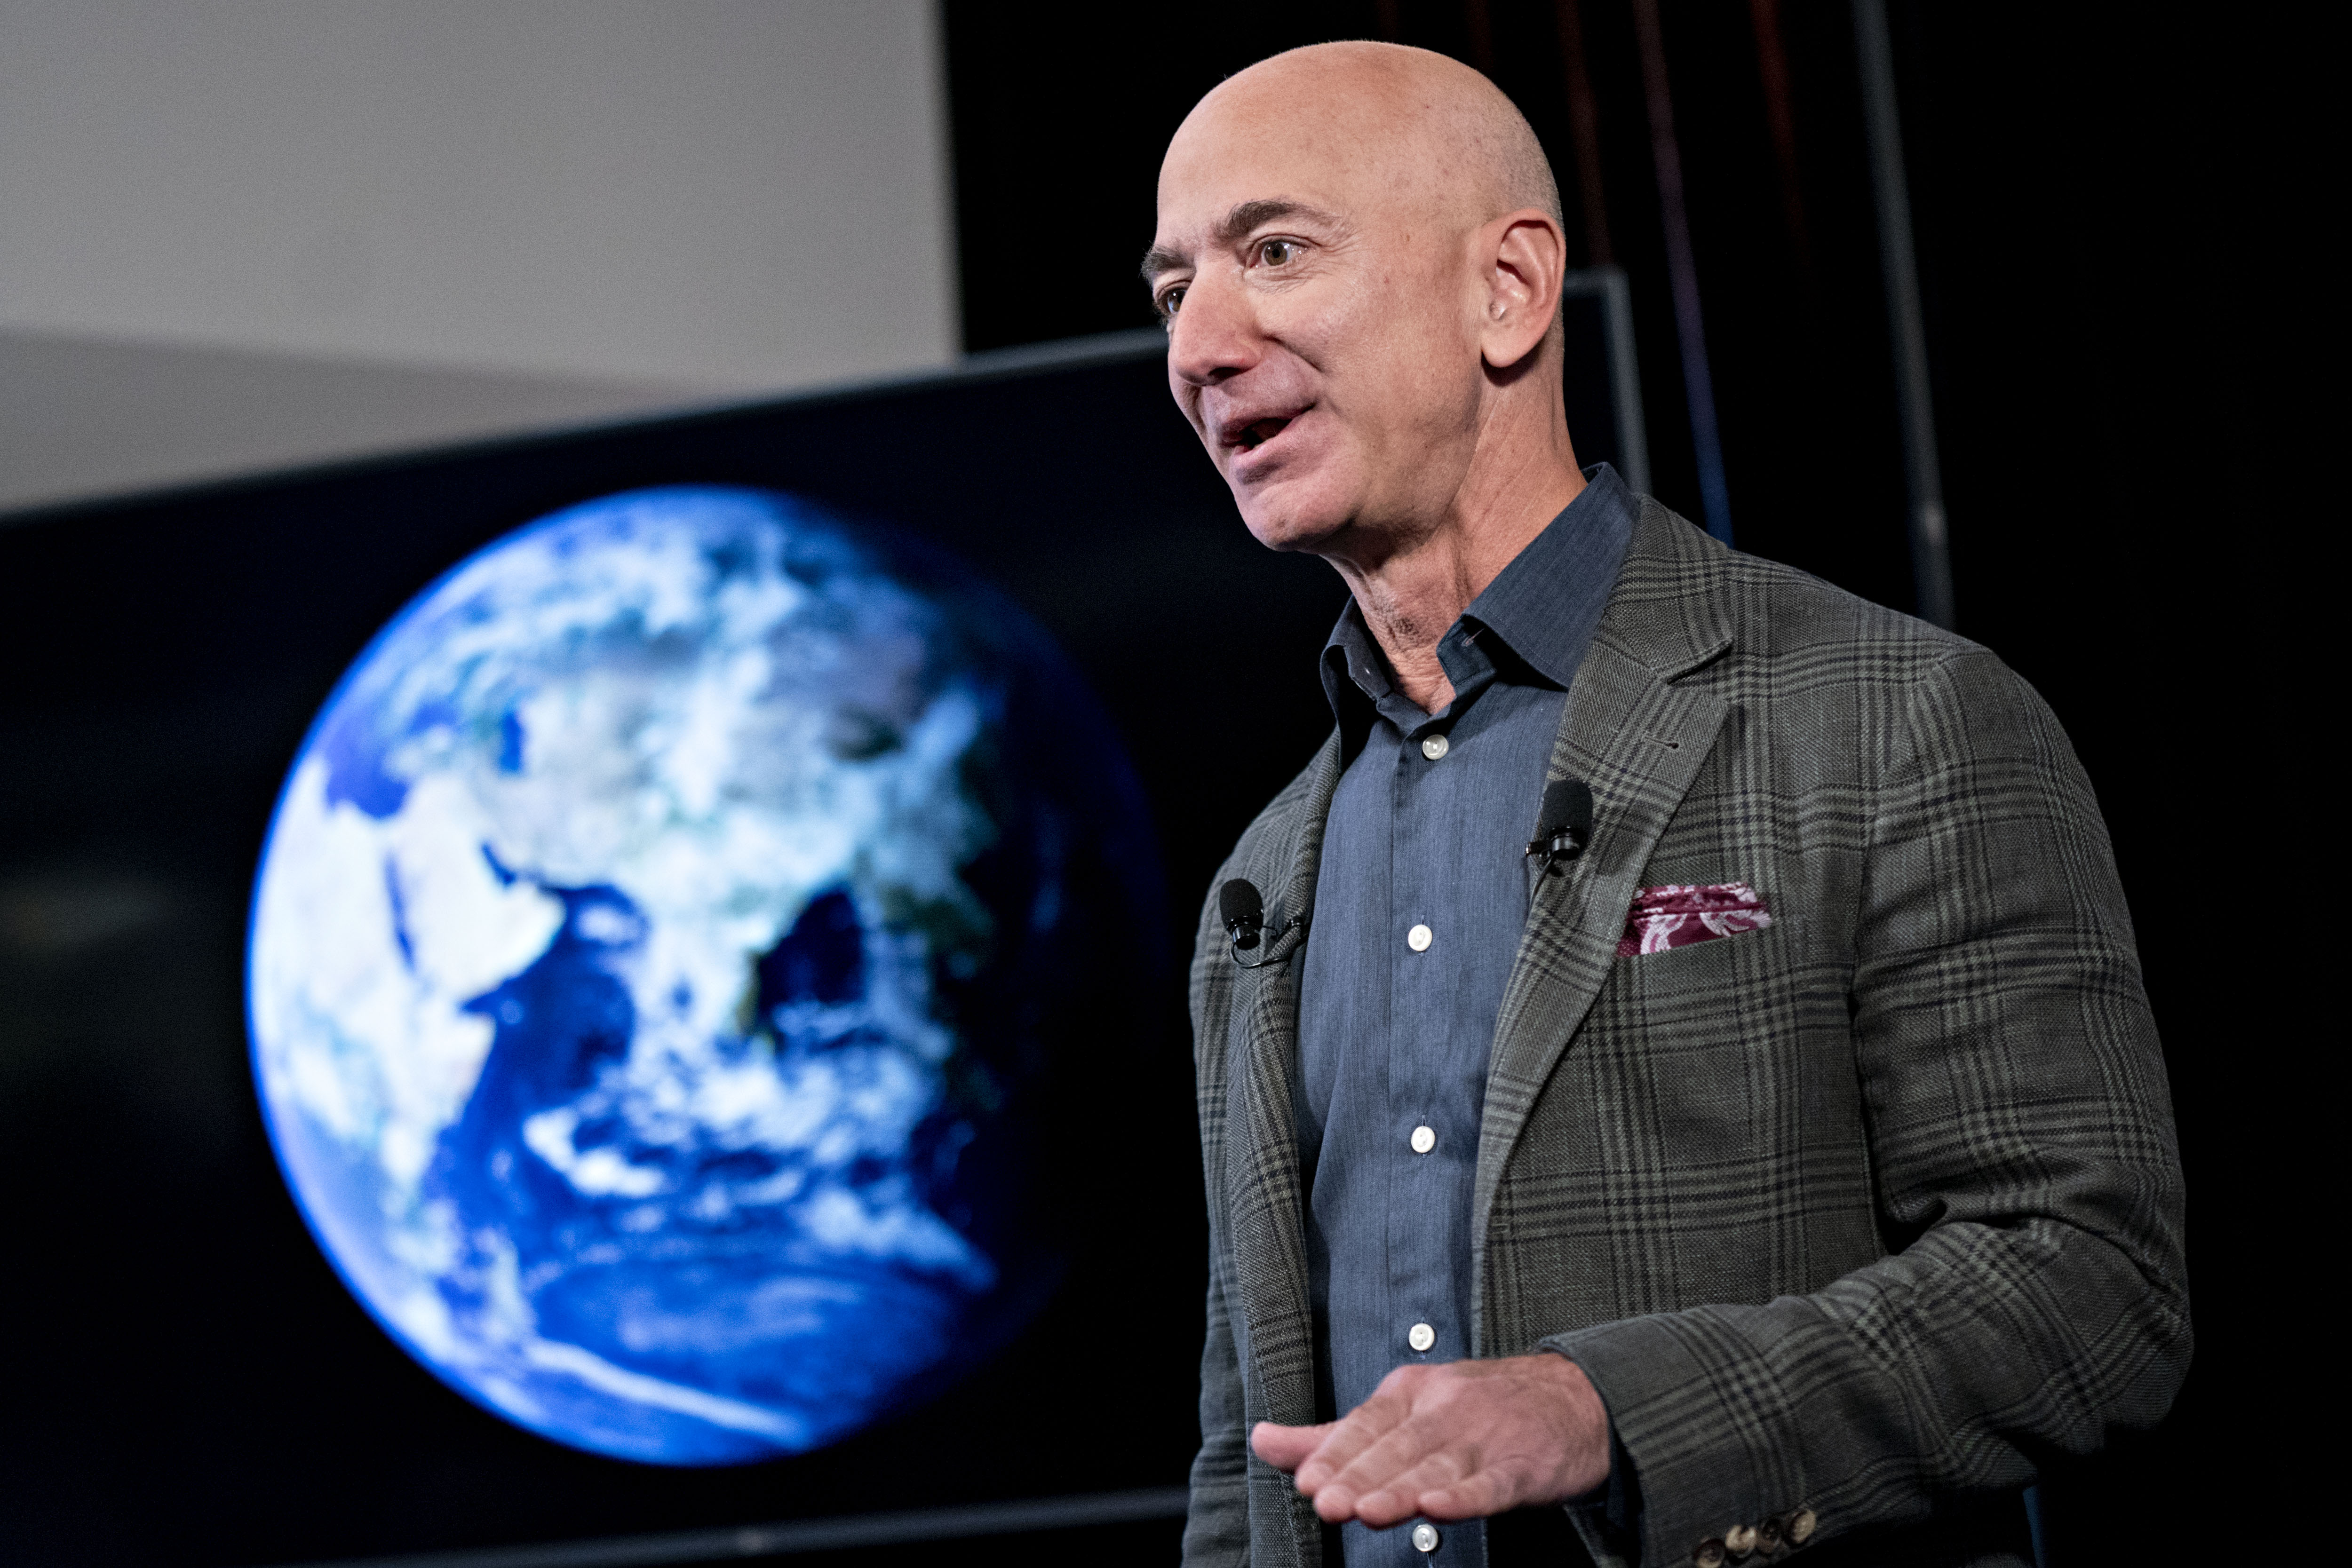 Jeff Bezos speaking onstage in front of a screen showing a picture of the Earth as seen from space.